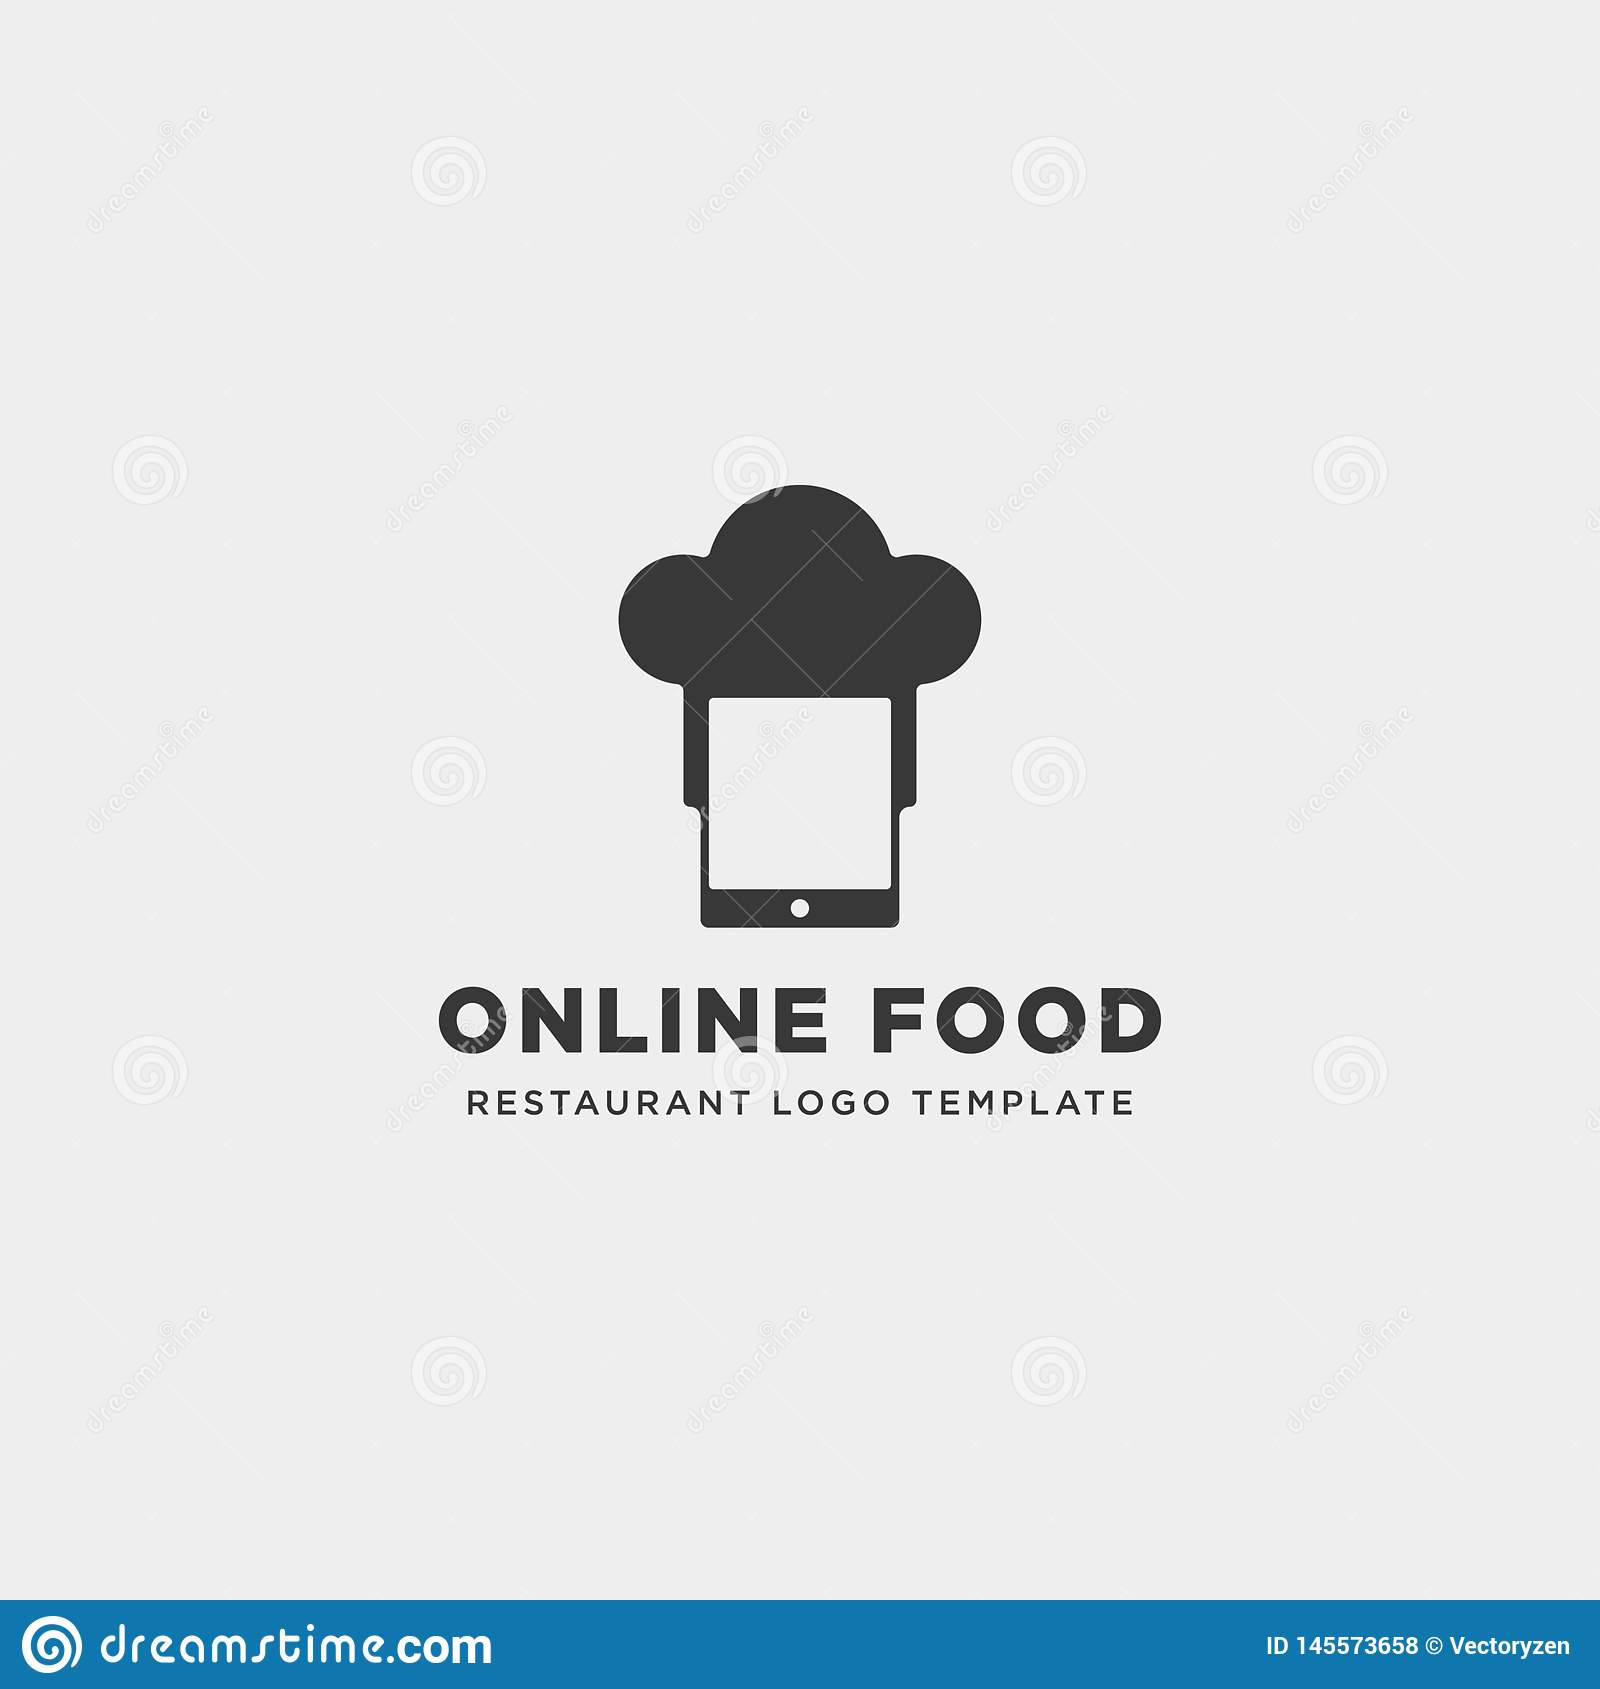 Mobile Phone Chef Restaurant Technology Simple Flat Logo